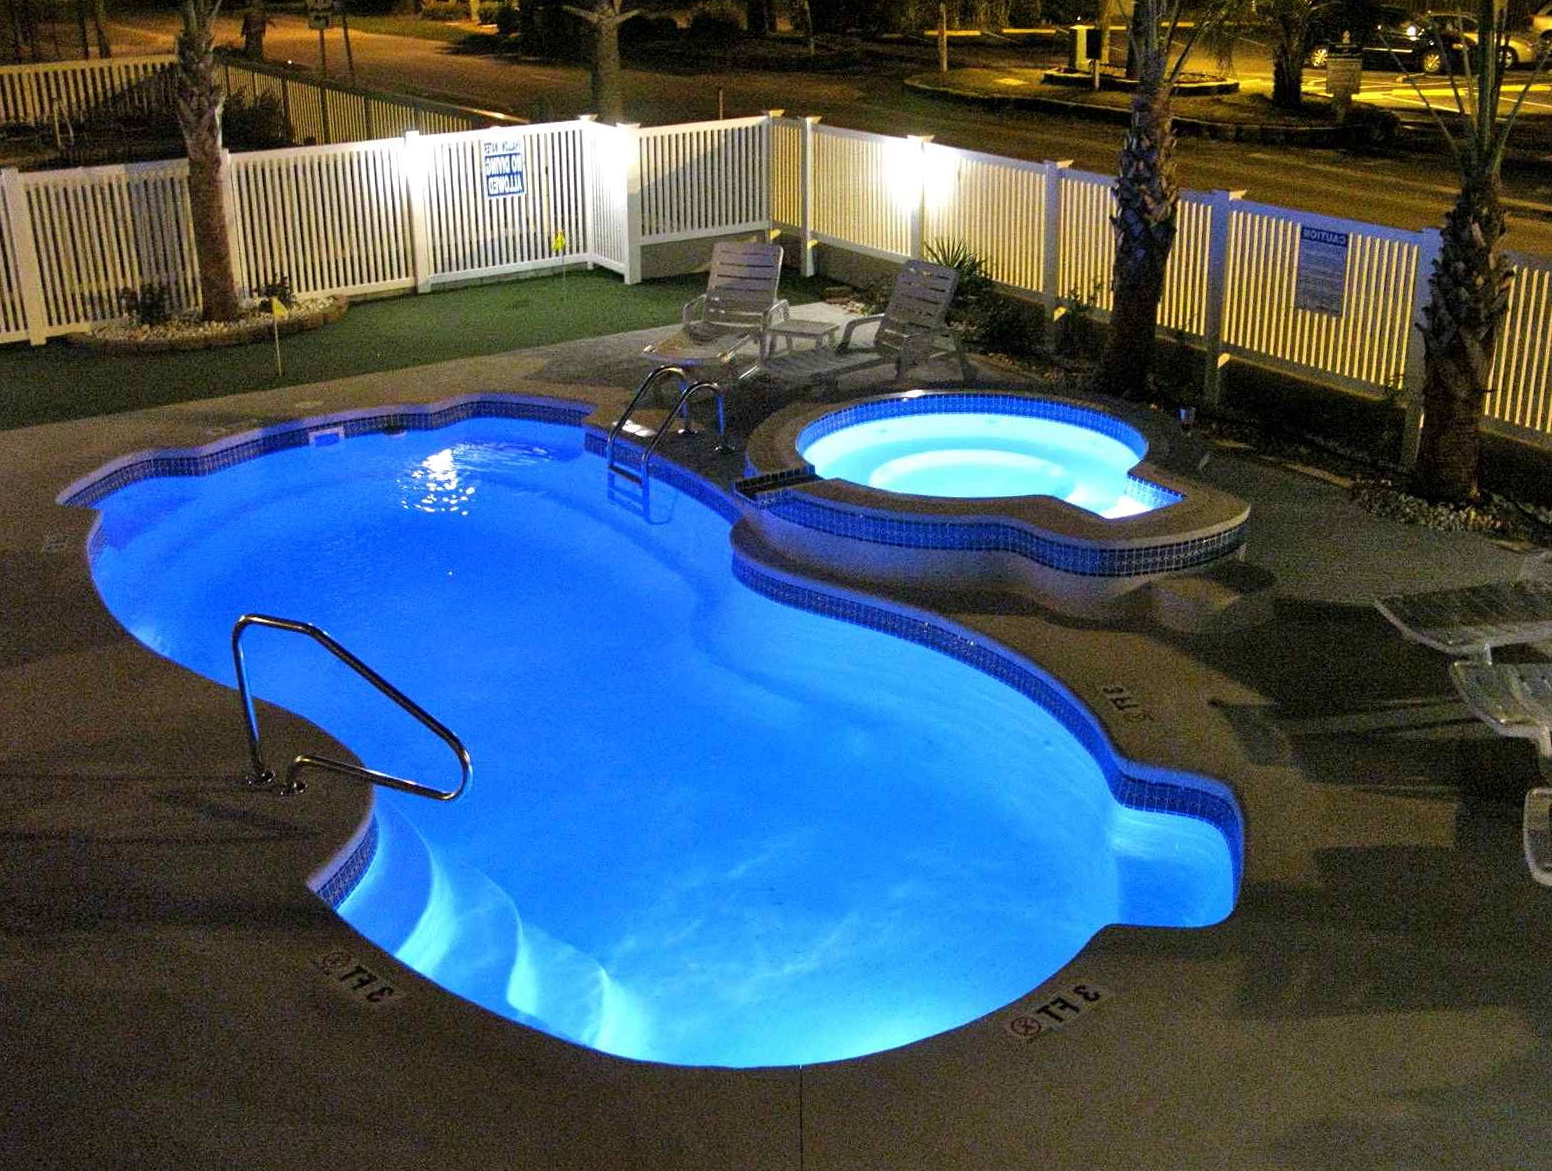 Deck design ideas for above ground pools home design ideas for On ground pool designs